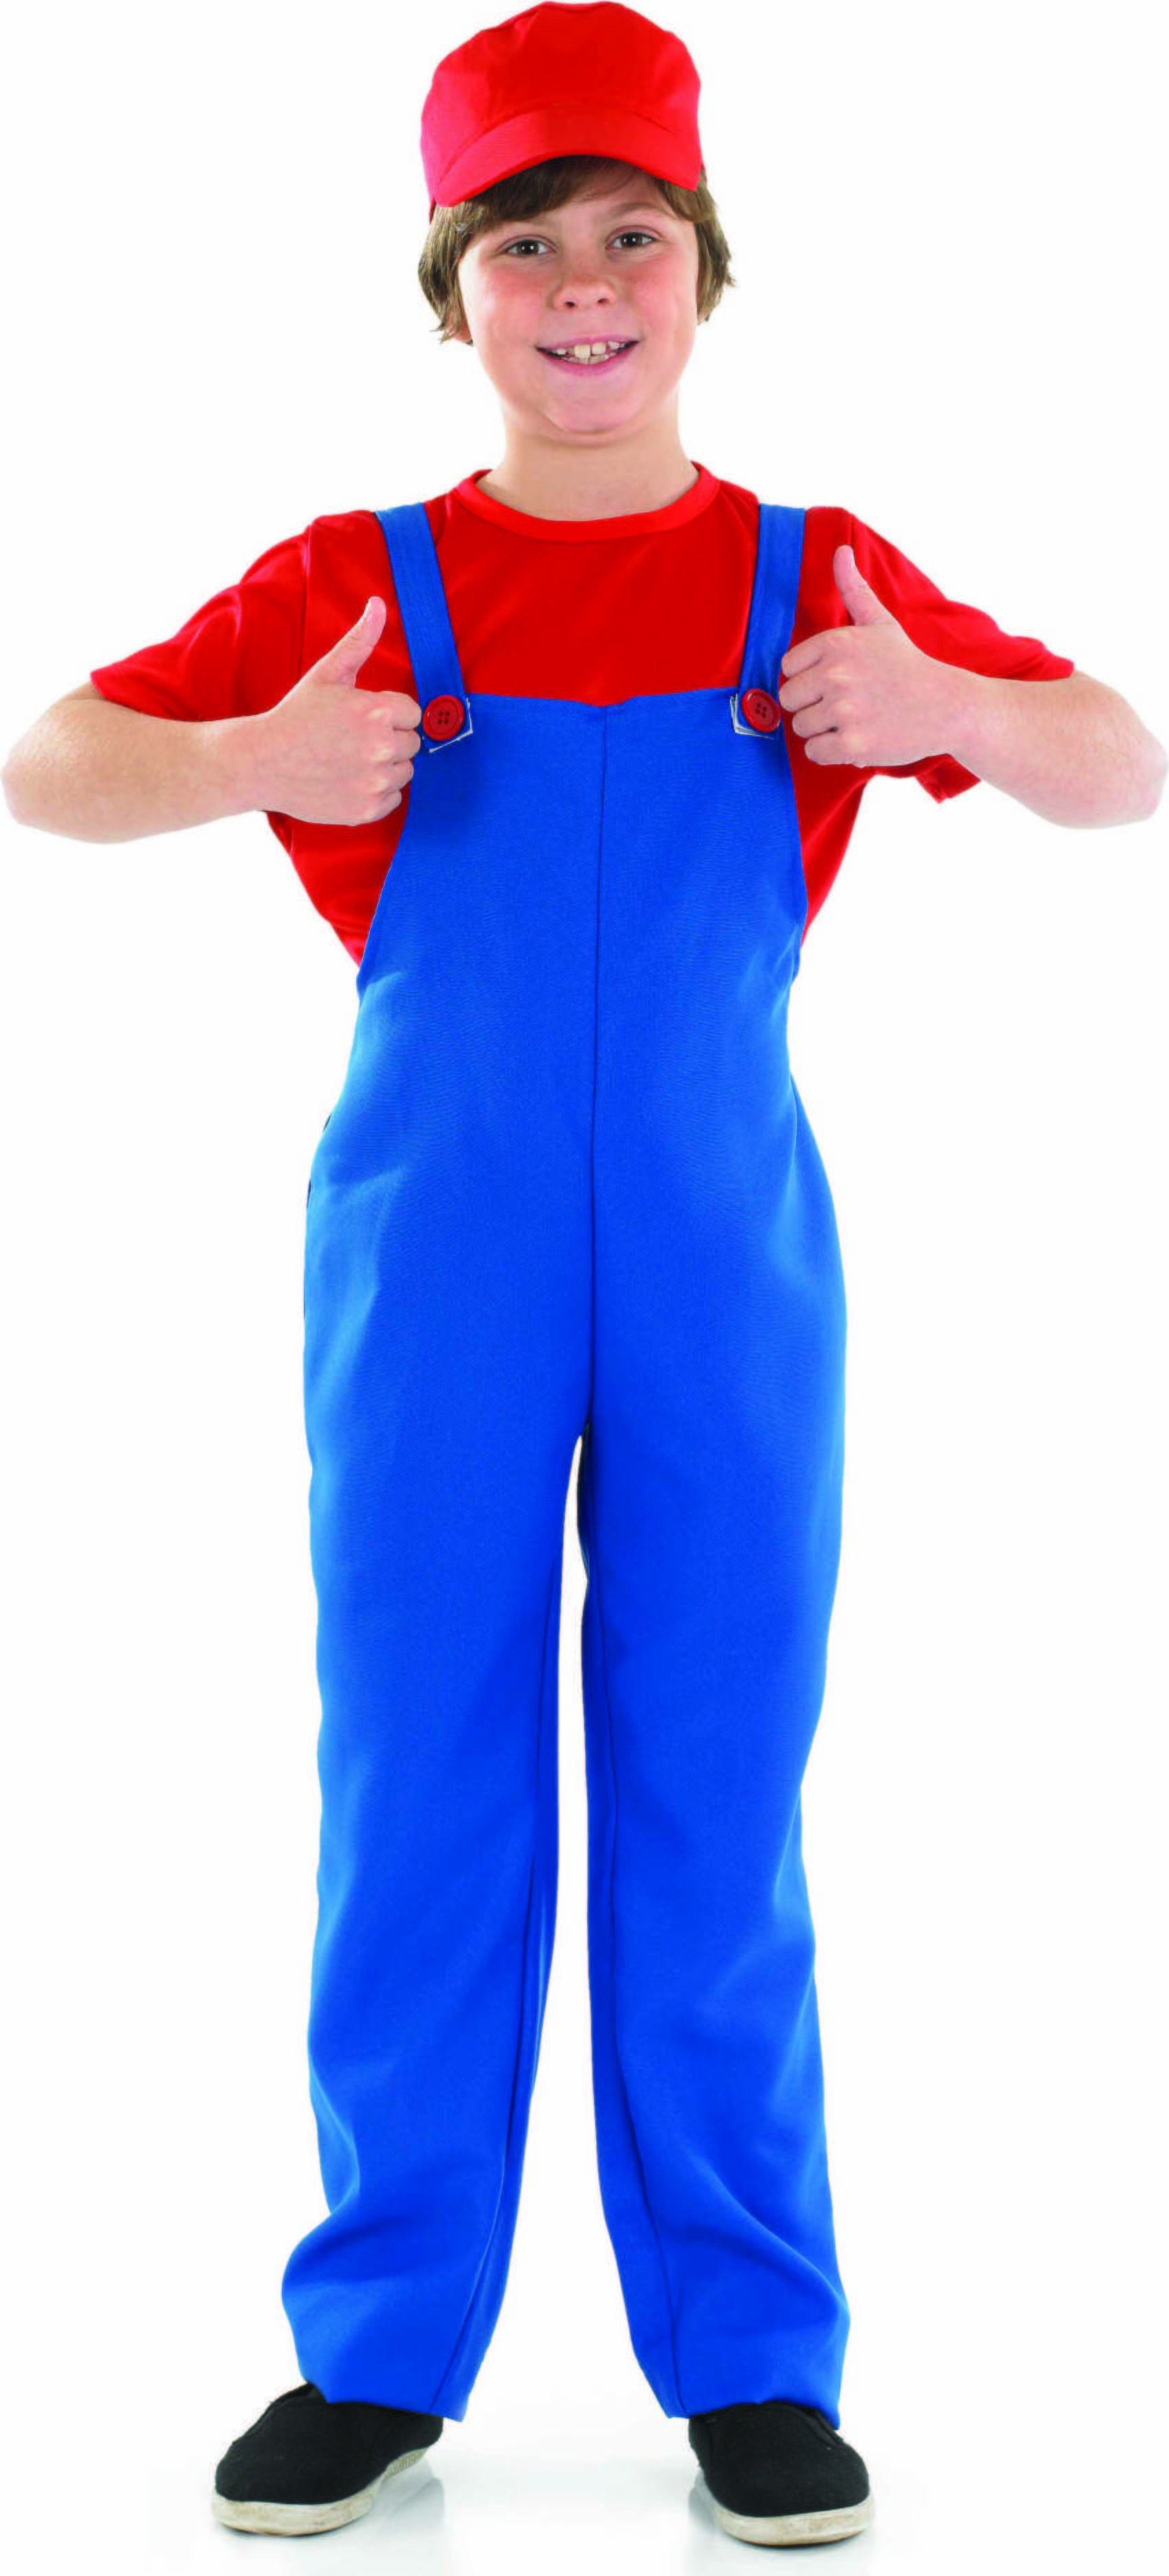 Red Plumbers Mate Boy Fancy Dress Costume